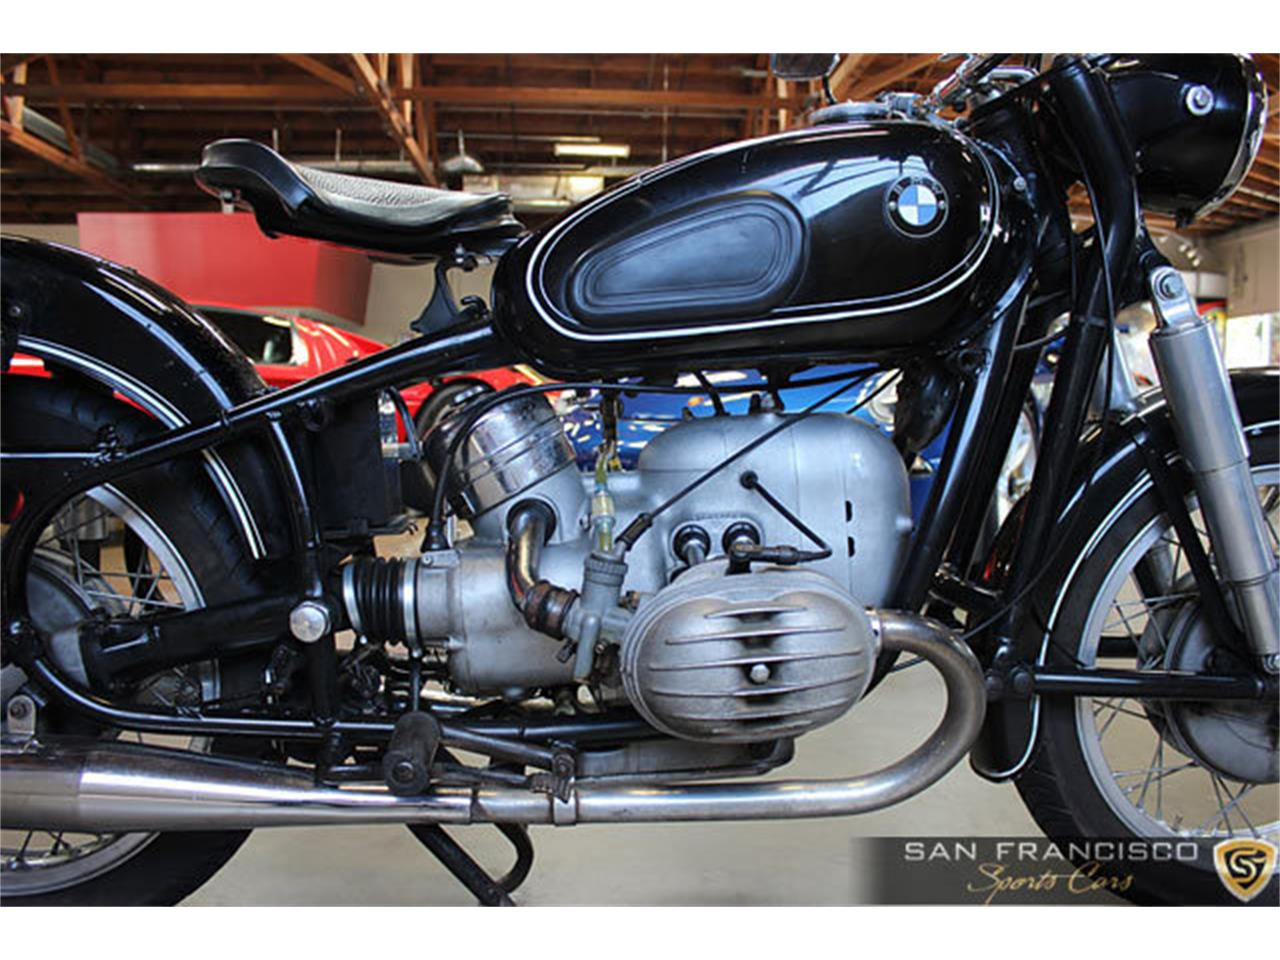 Large Picture of Classic '63 Motorcycle - $11,995.00 - LSEQ